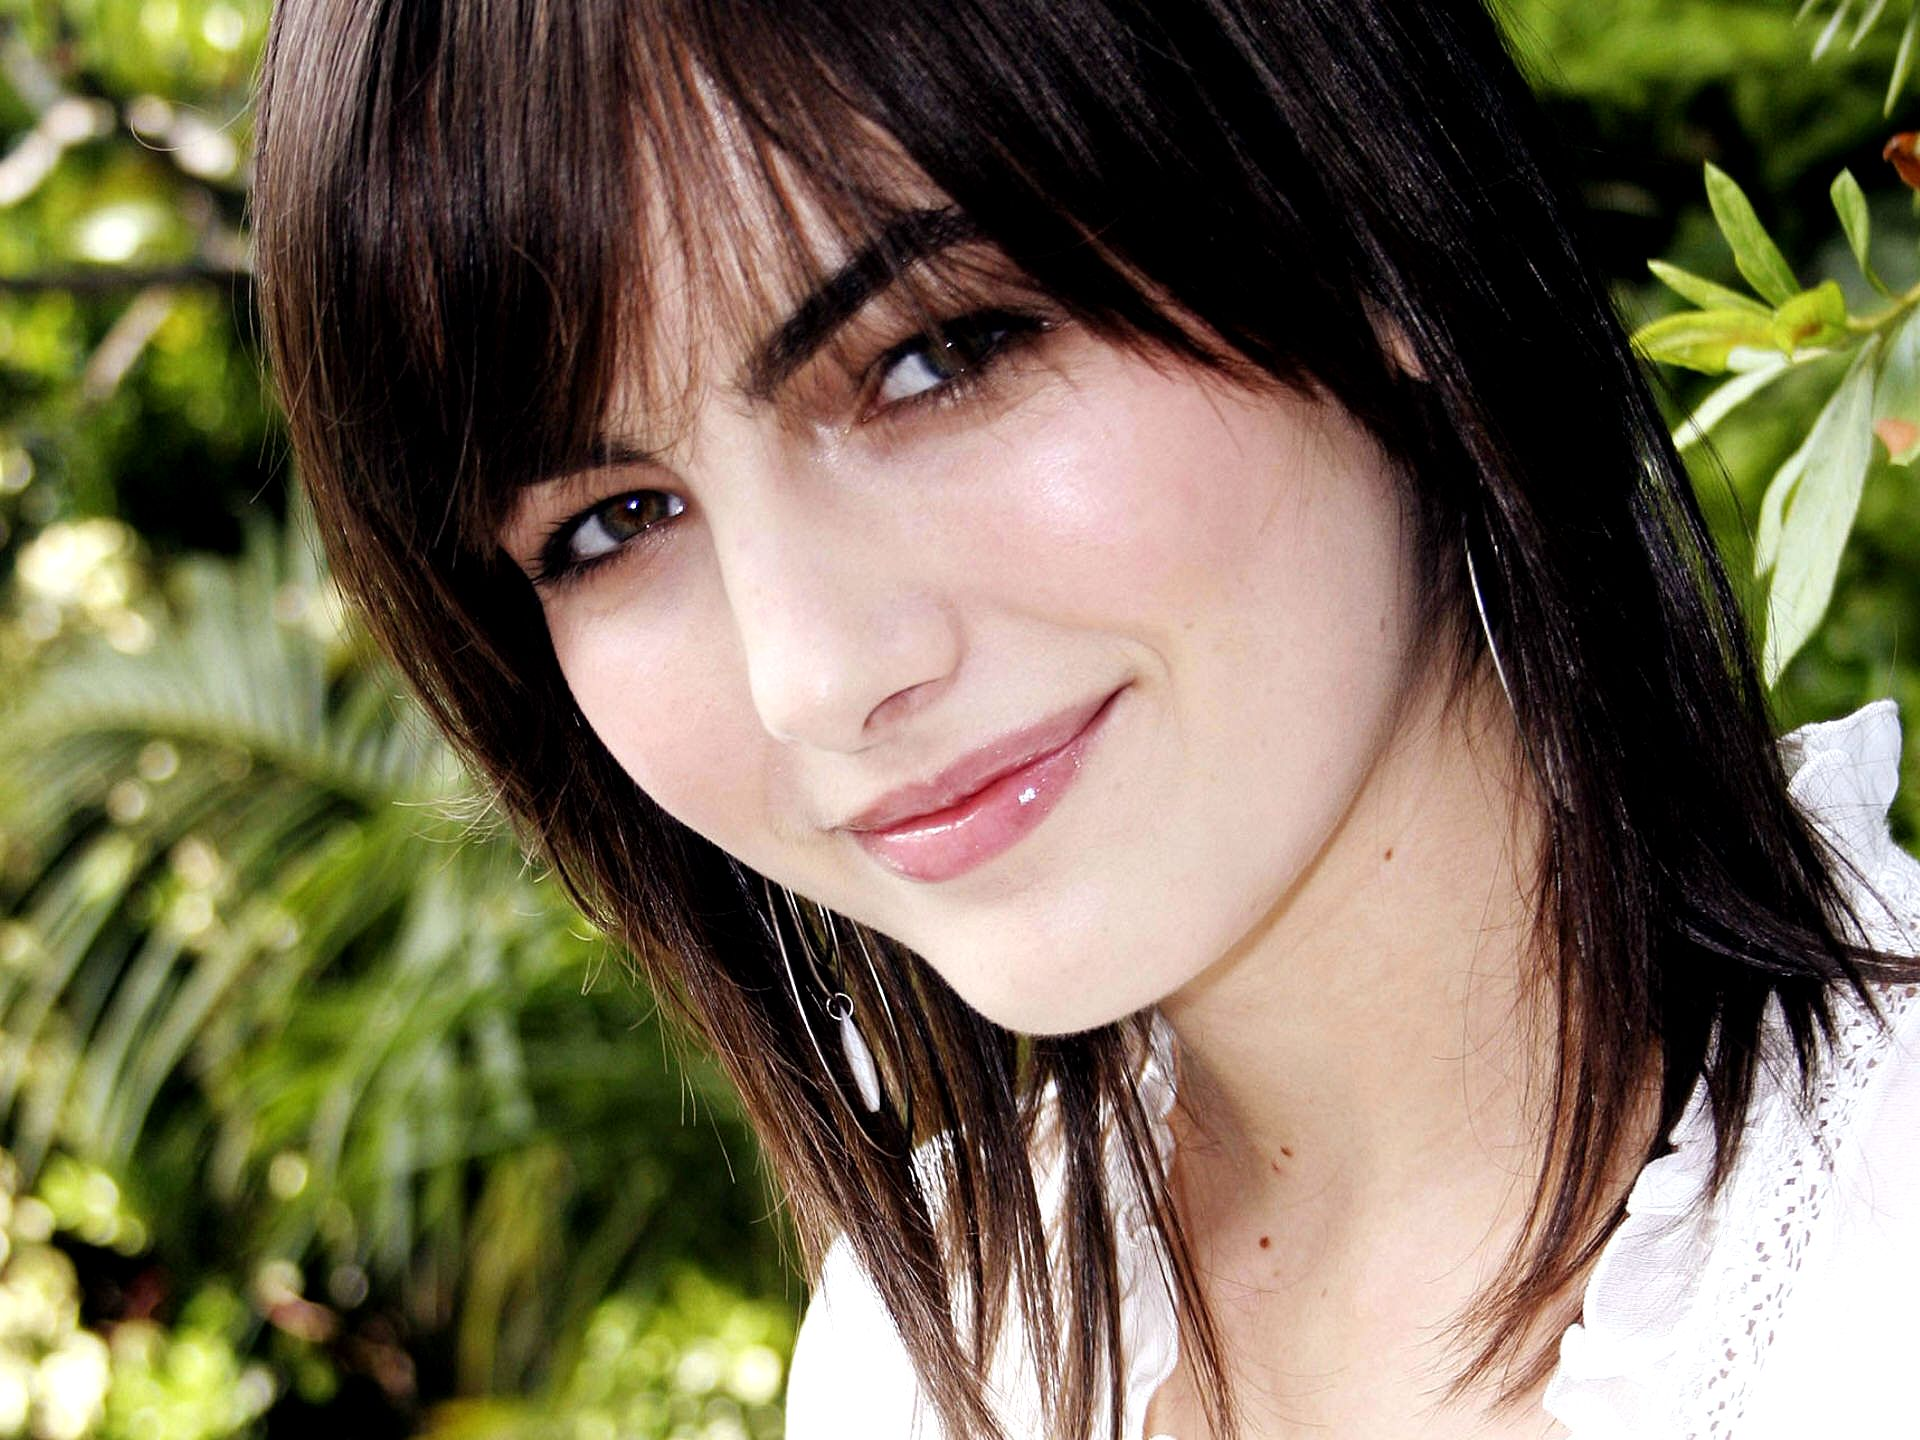 1920x1440 - Camilla Belle Wallpapers 21